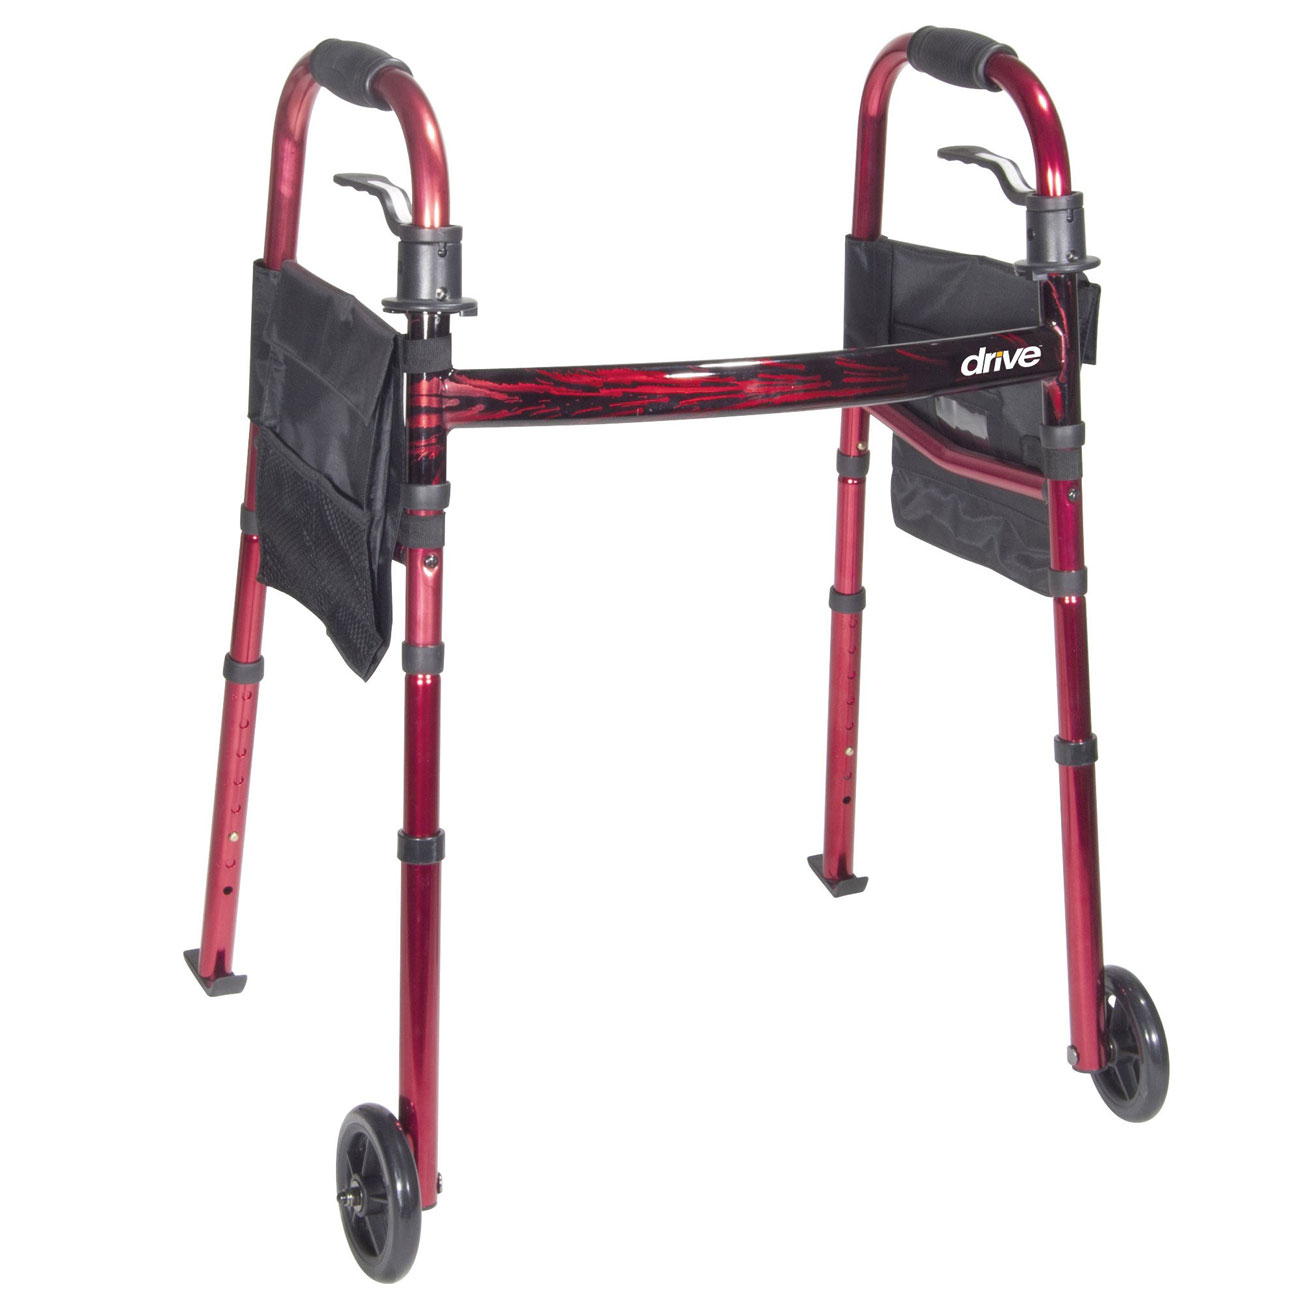 Drive Deluxe Folding Travel Walker Price: $95.95